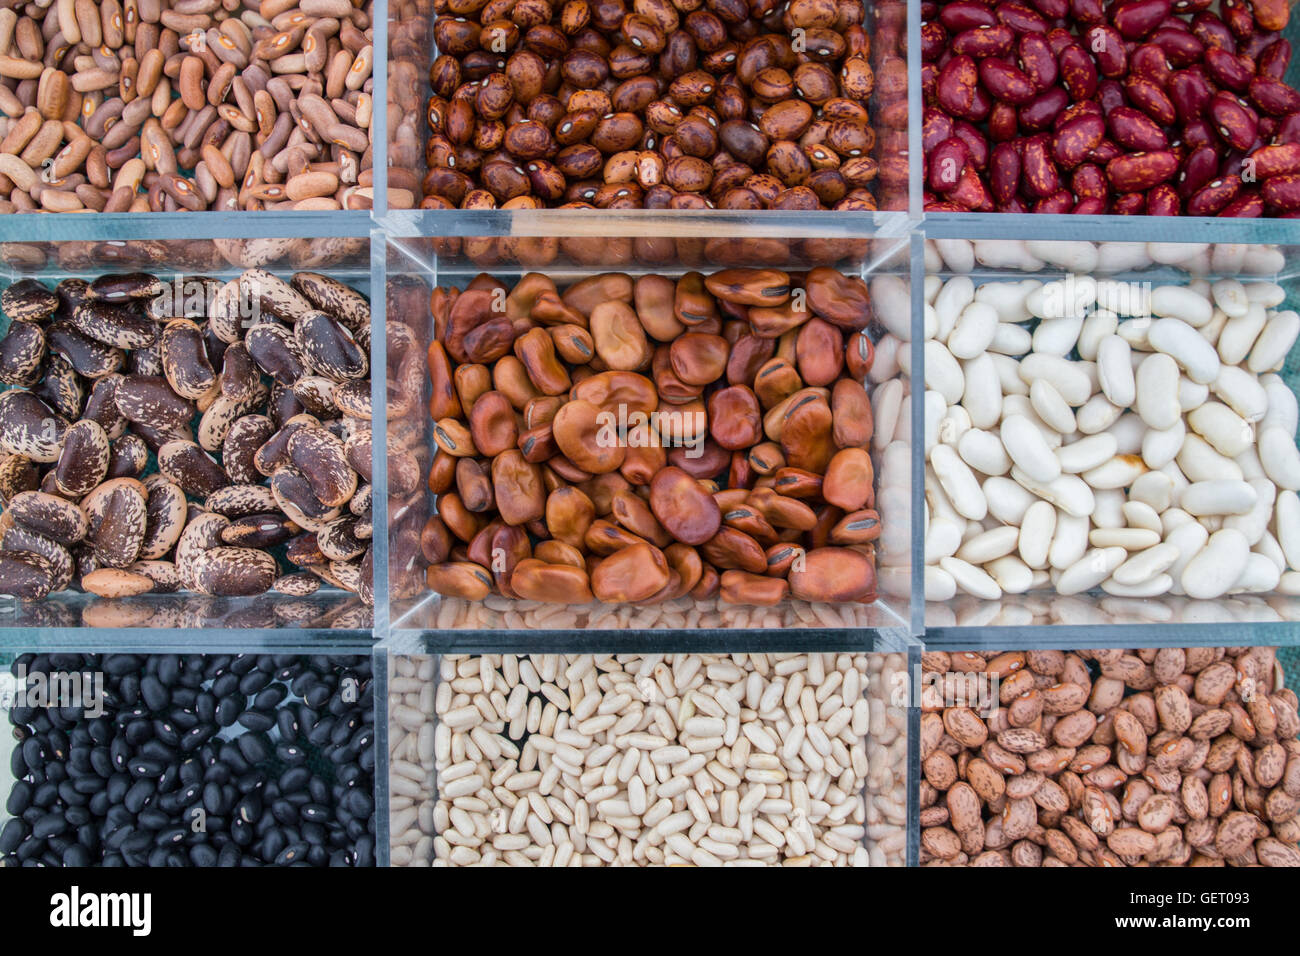 Display of beans at the The Royal Horticultural Society show in Cardiff, 17th April 2016. - Stock Image